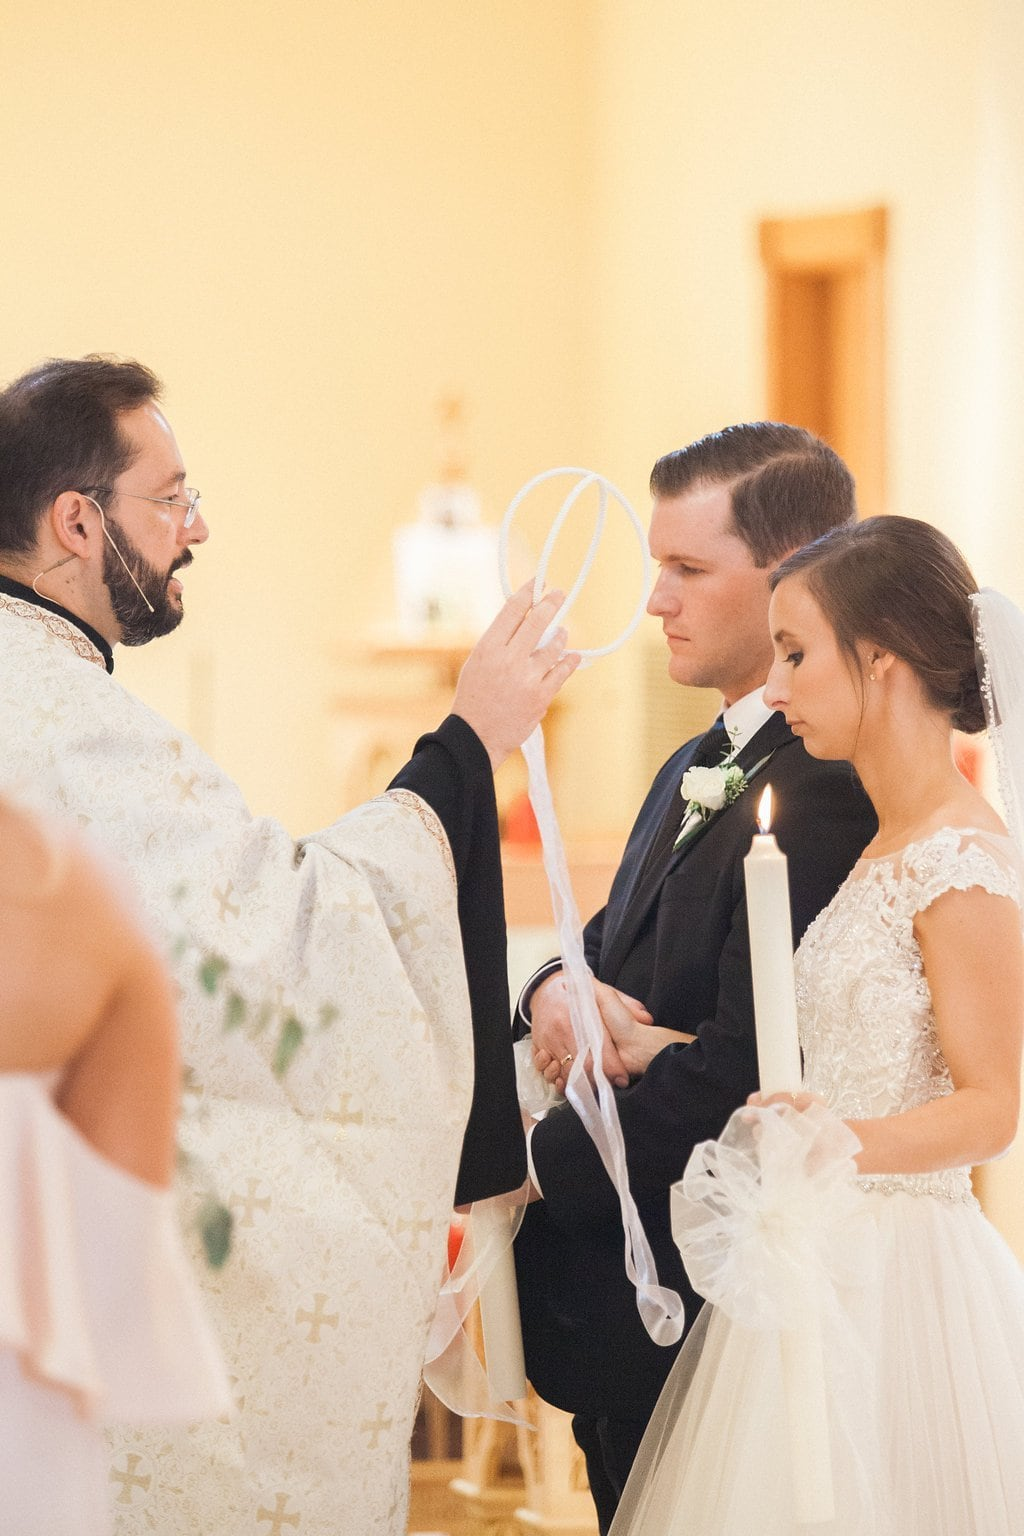 Greek Priest blessing the bride and groom during their wedding ceremony